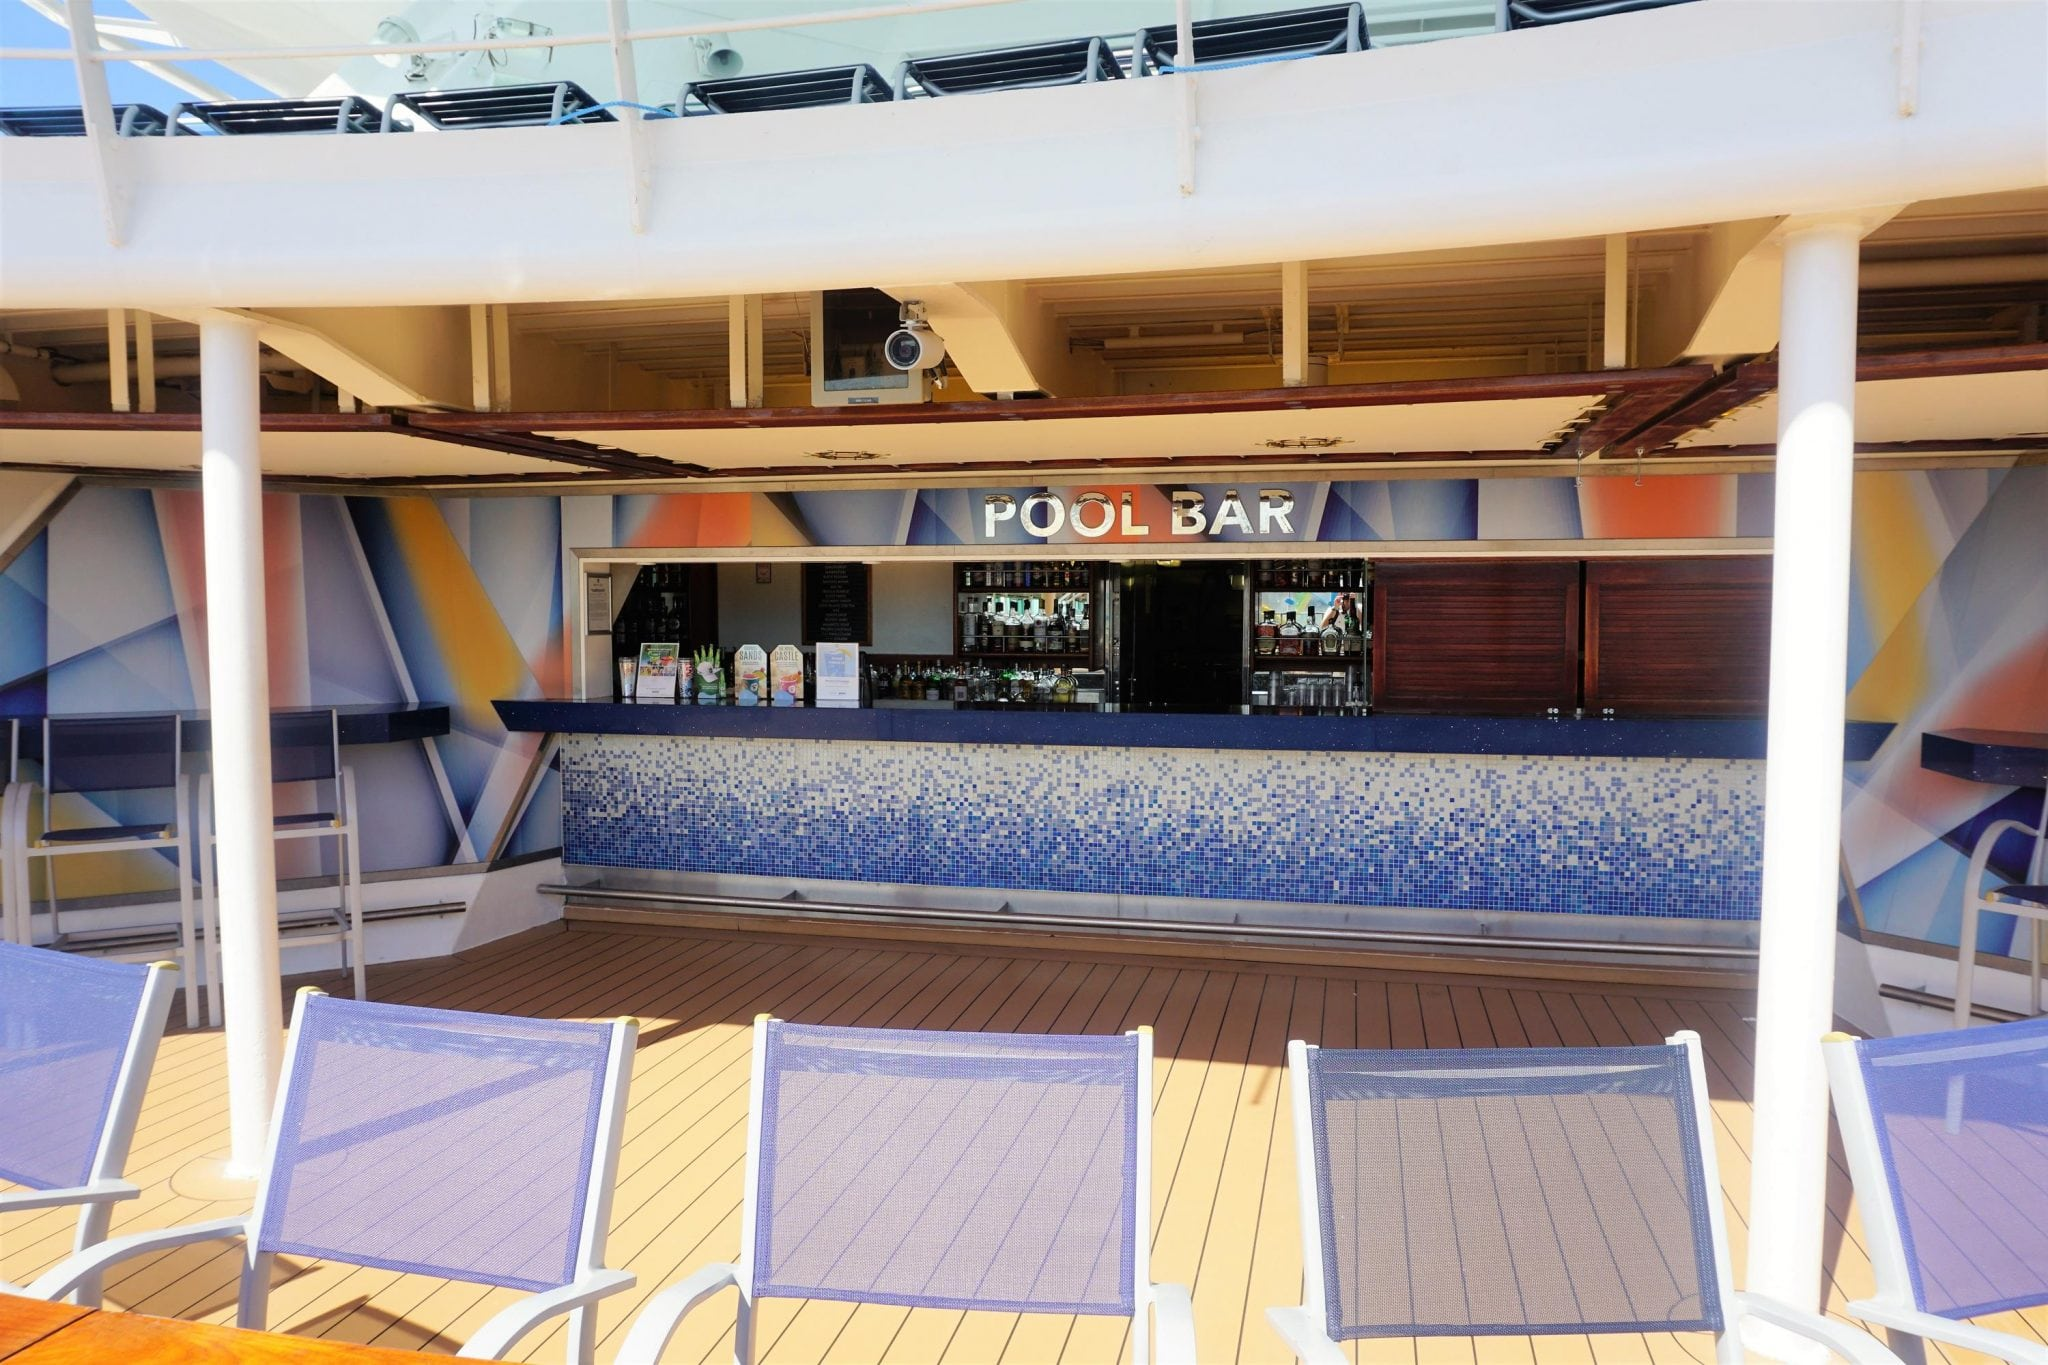 Pool Bar Majesty of the Seas